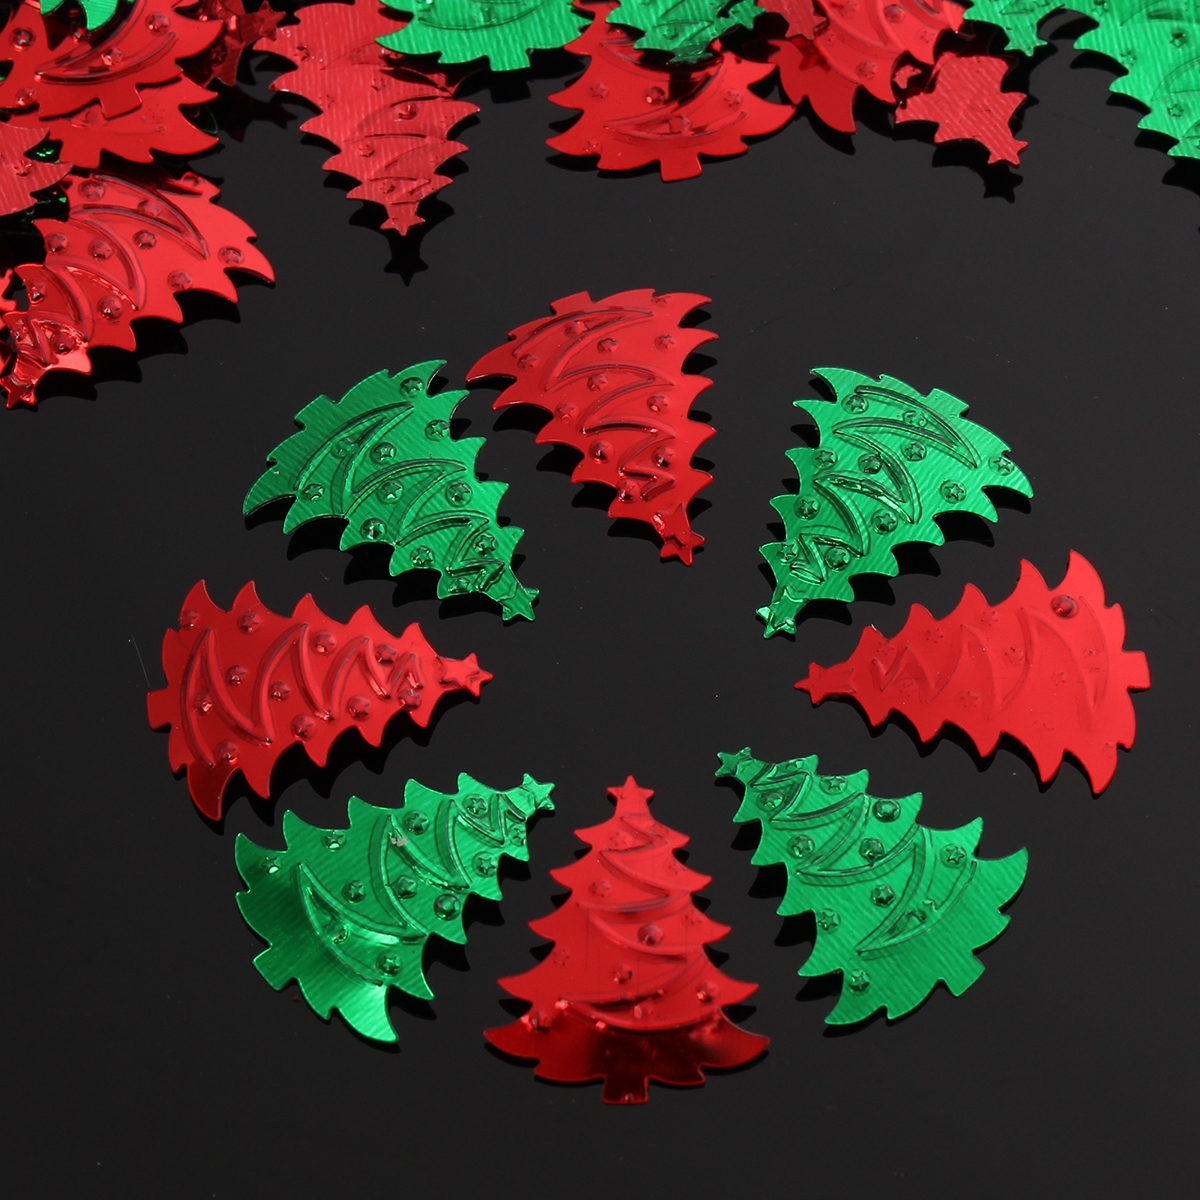 200pcs Christmas Tree Confetti Red Green Mixed Decoration Plastic Table Party Supplies